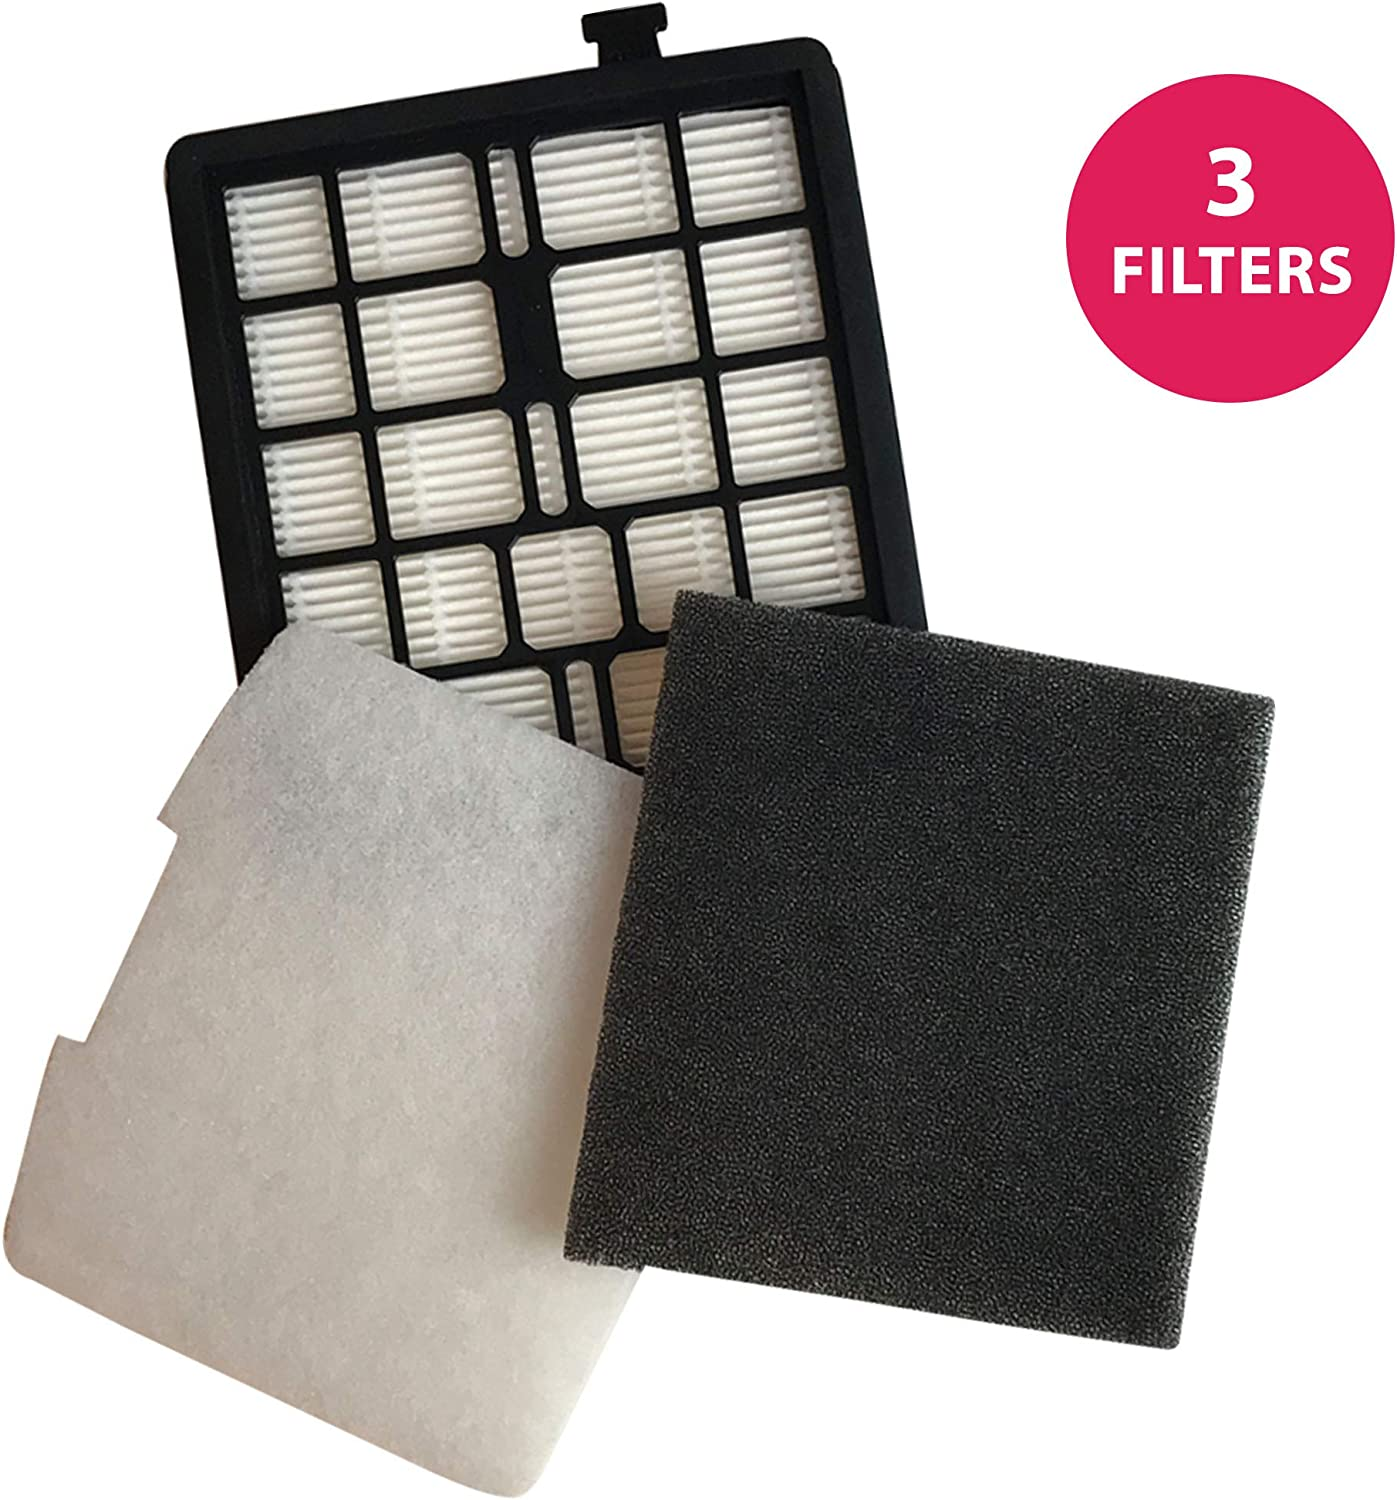 Think Crucial Replacement for Dirt Devil Style F45 HEPA Style Filter, Foam Pre-Filter, & Exhaust Filter, Compatible With Part # 2KQ0107000, 2KQ0104000 1KQ0106000